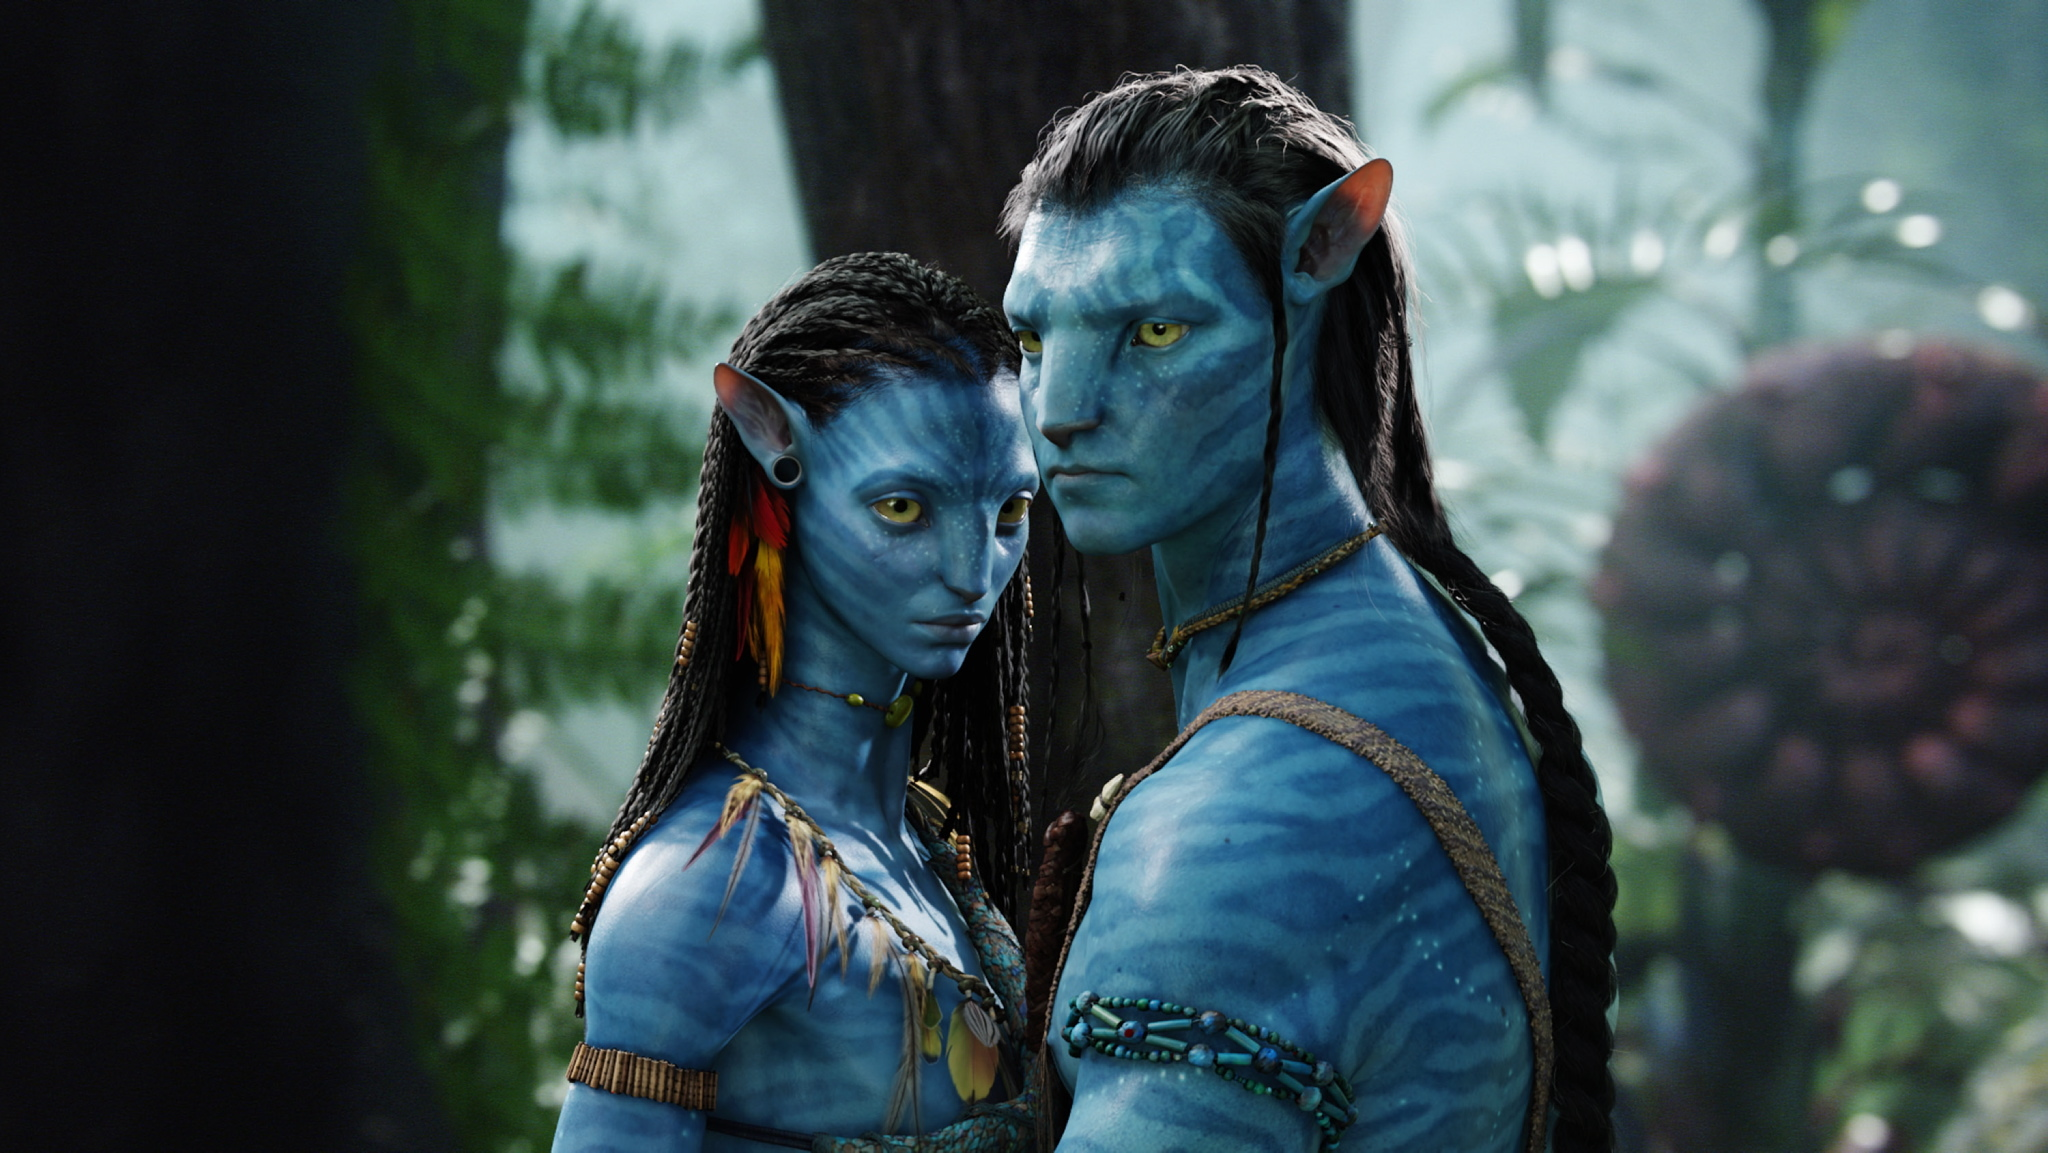 Sci-fi movie: Avatar